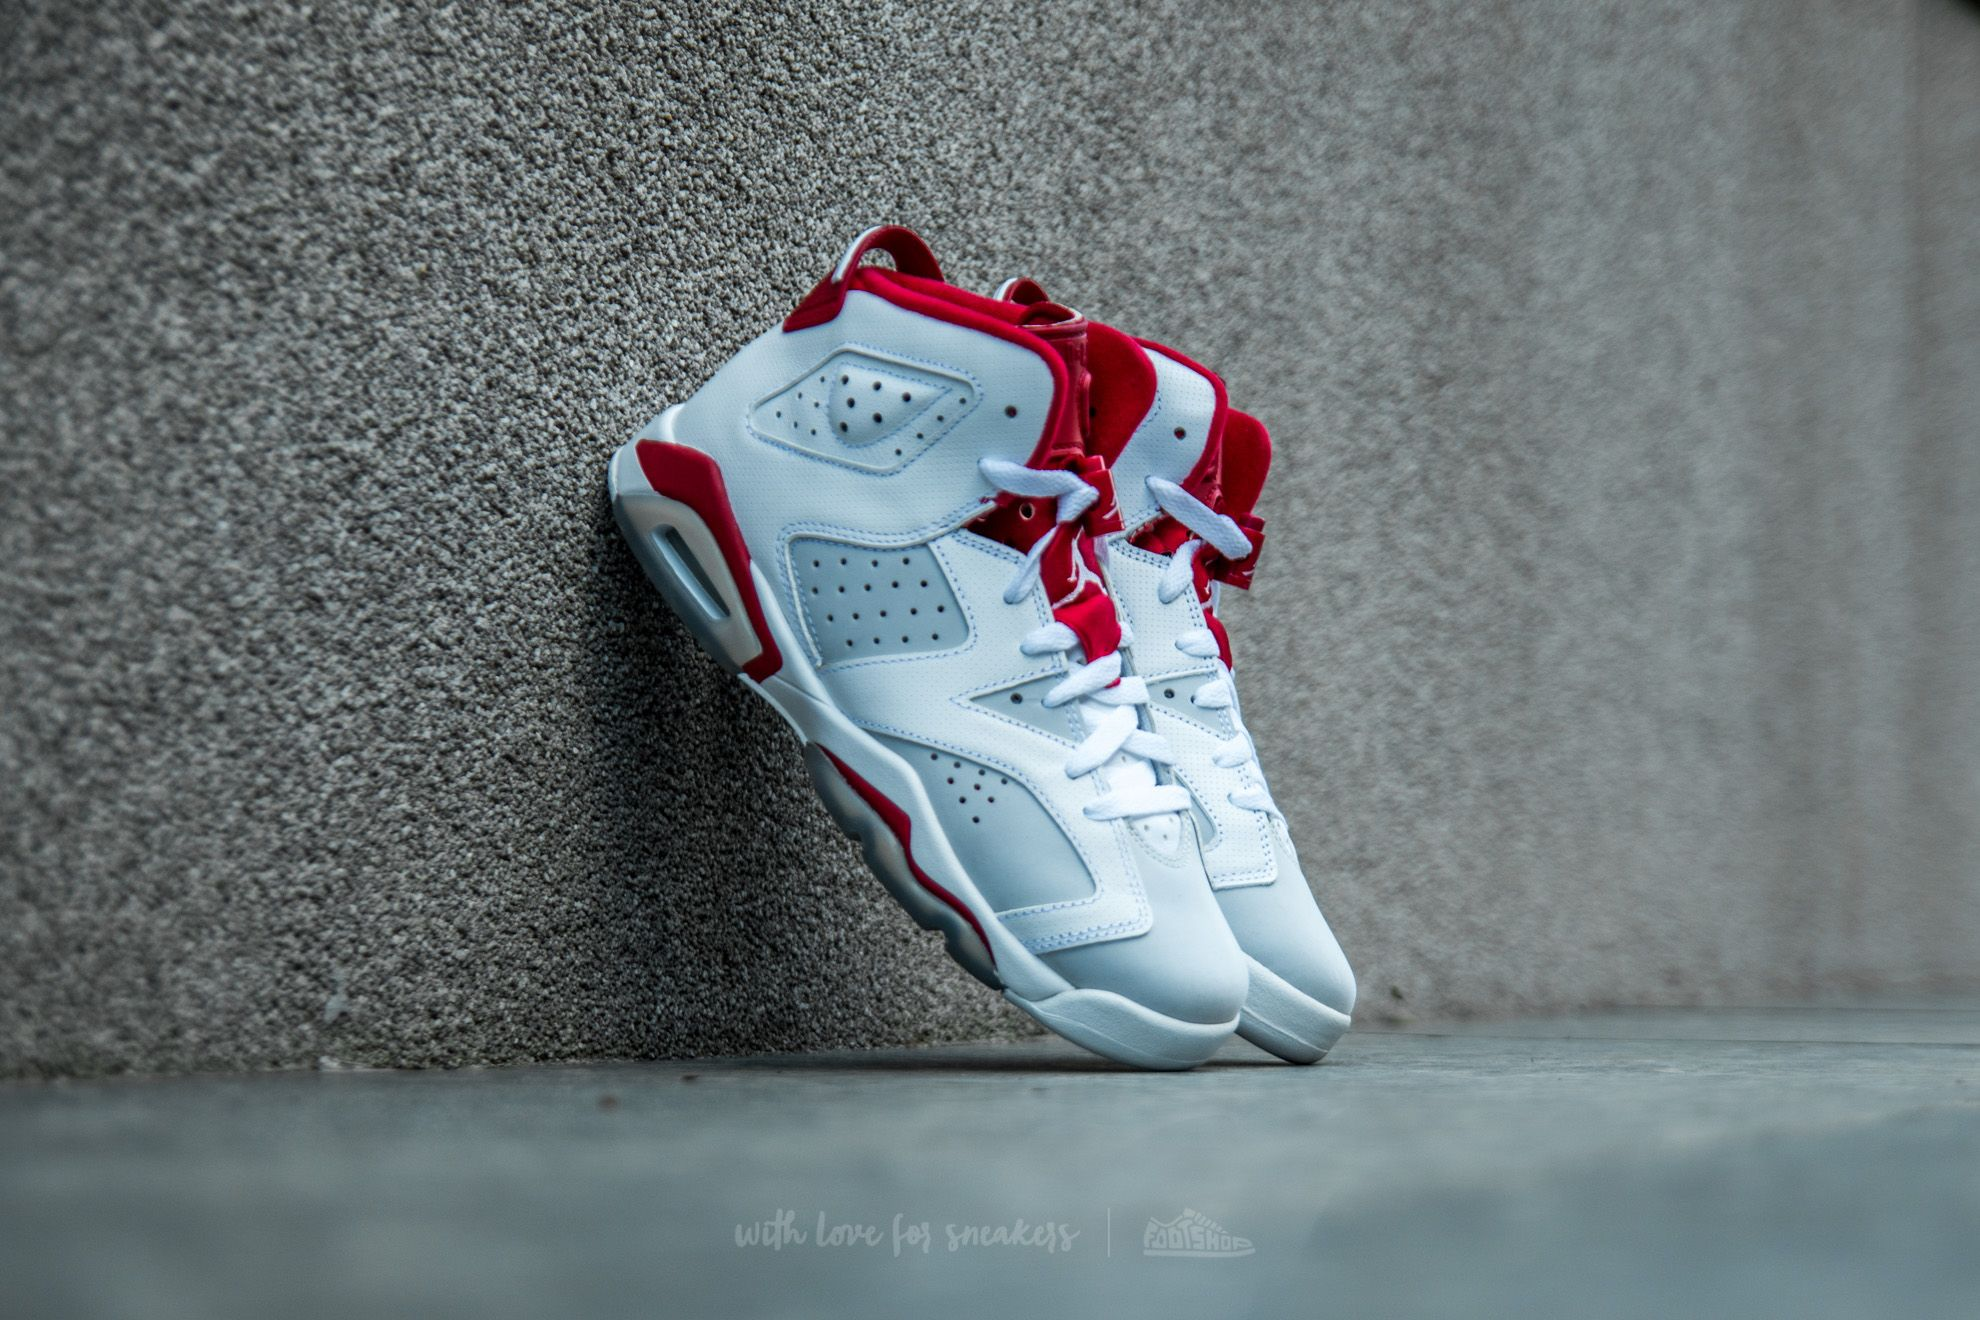 Air Jordan 6 Retro BG White/ Gym Red-Pure Platinum